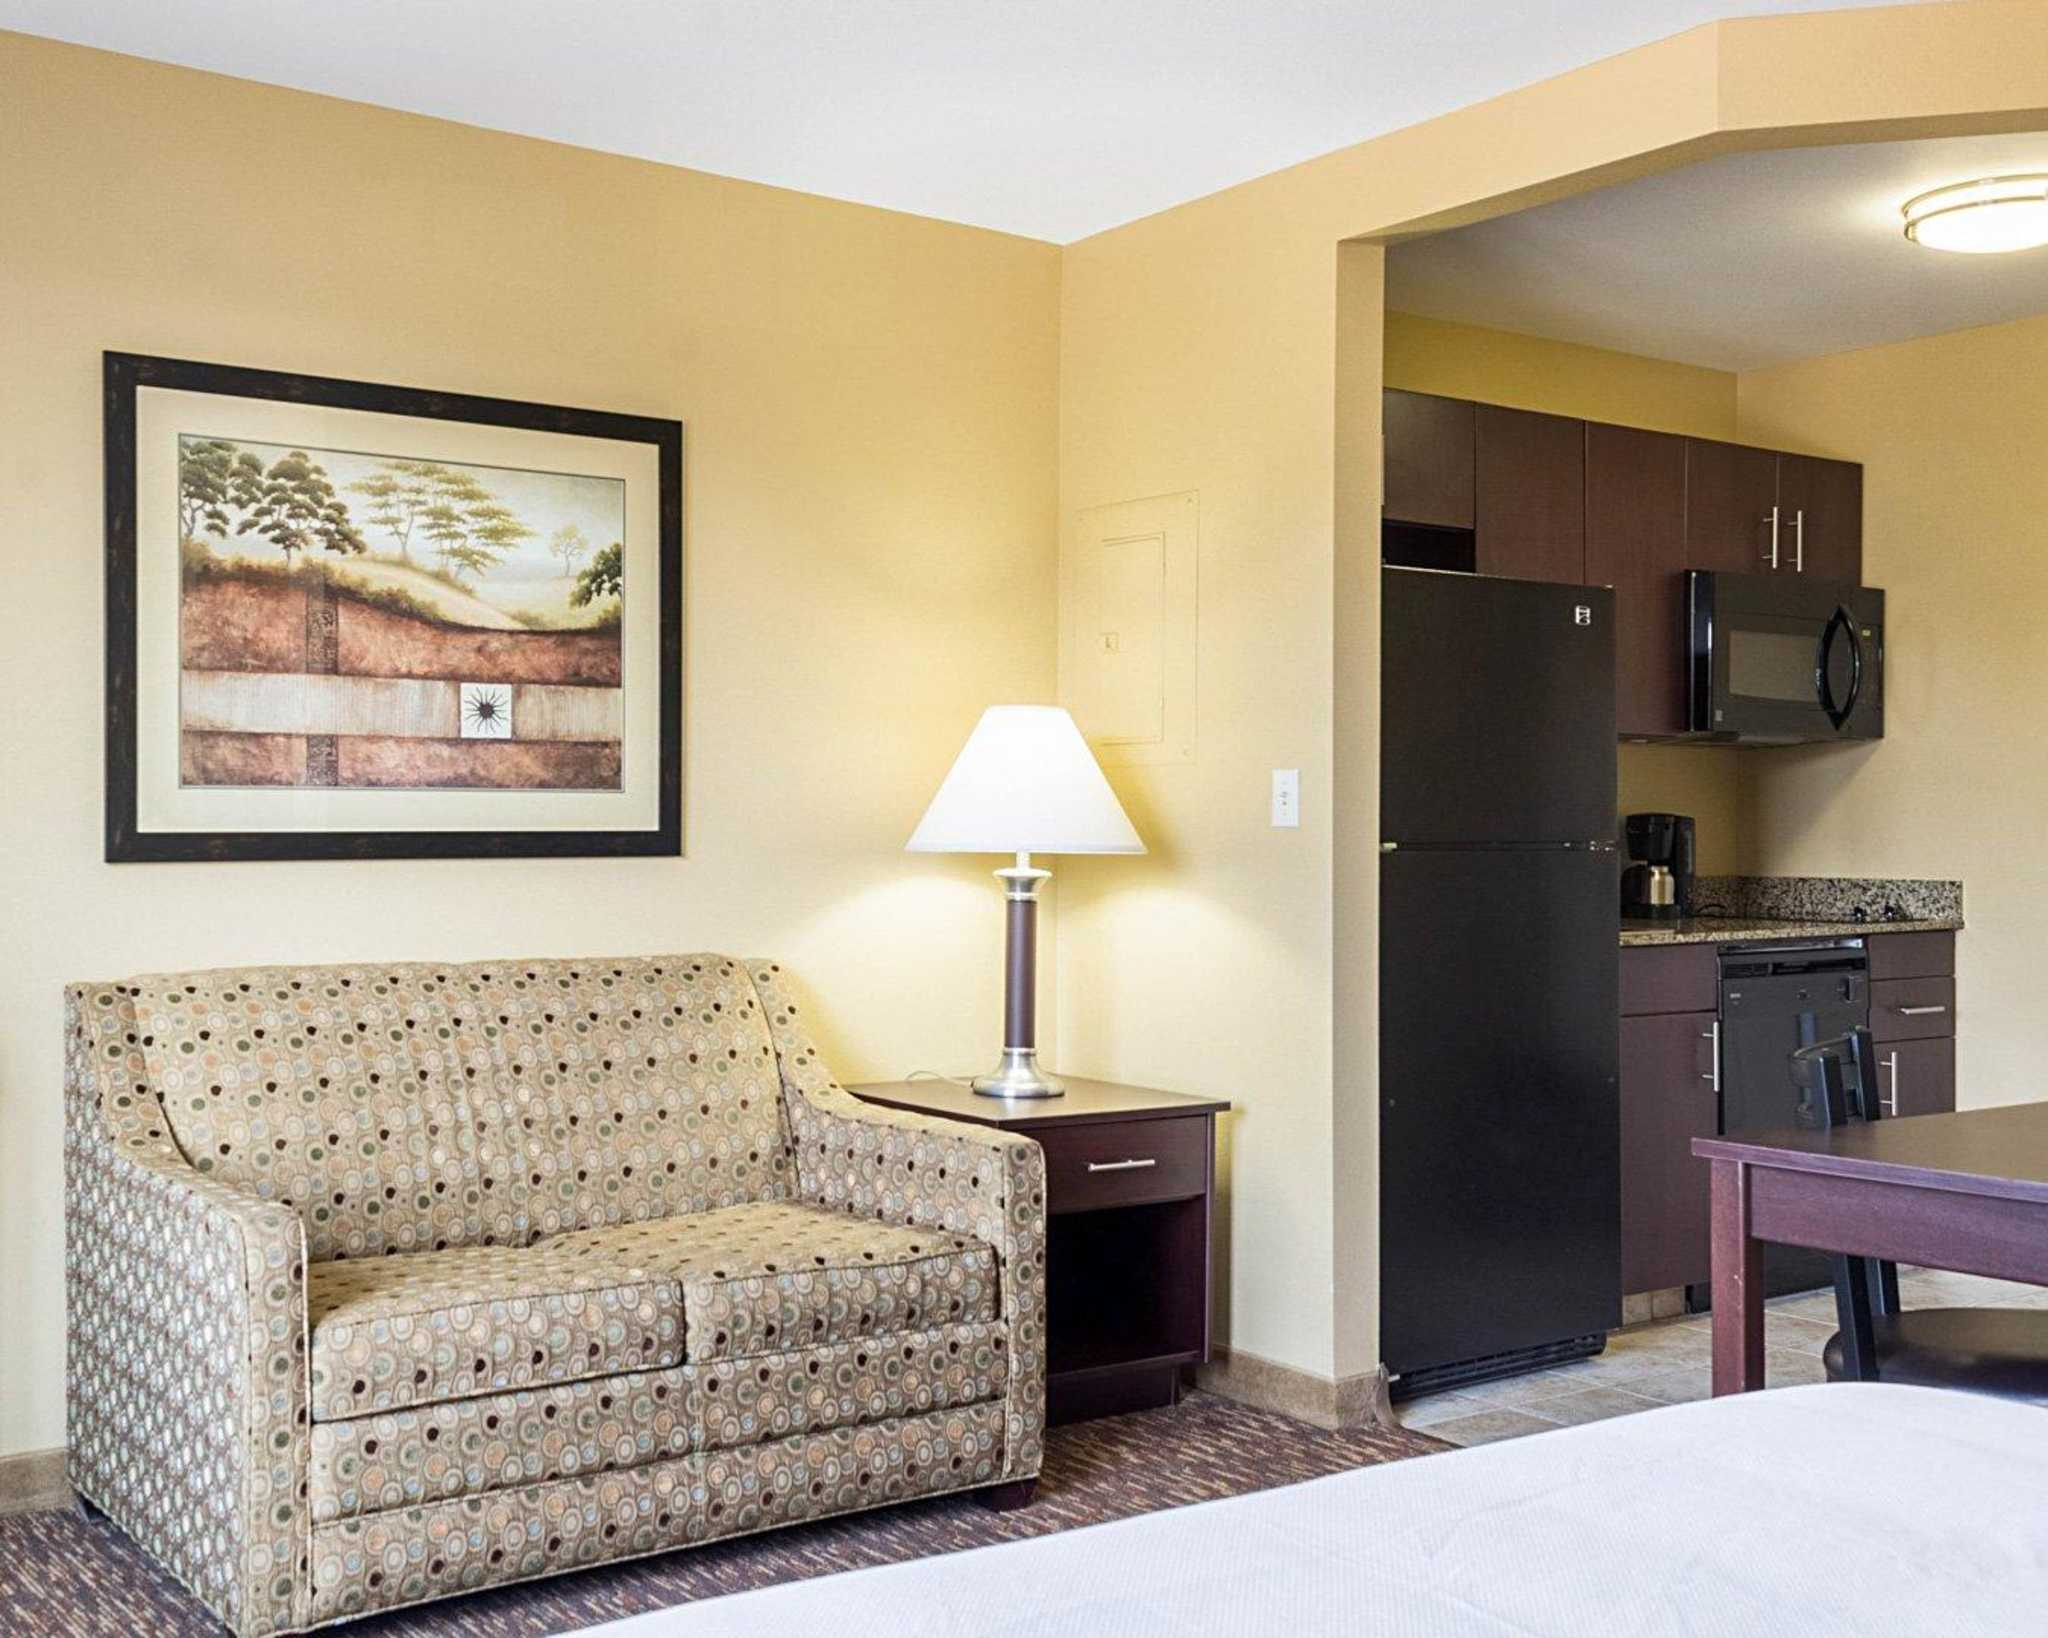 MainStay Suites image 23